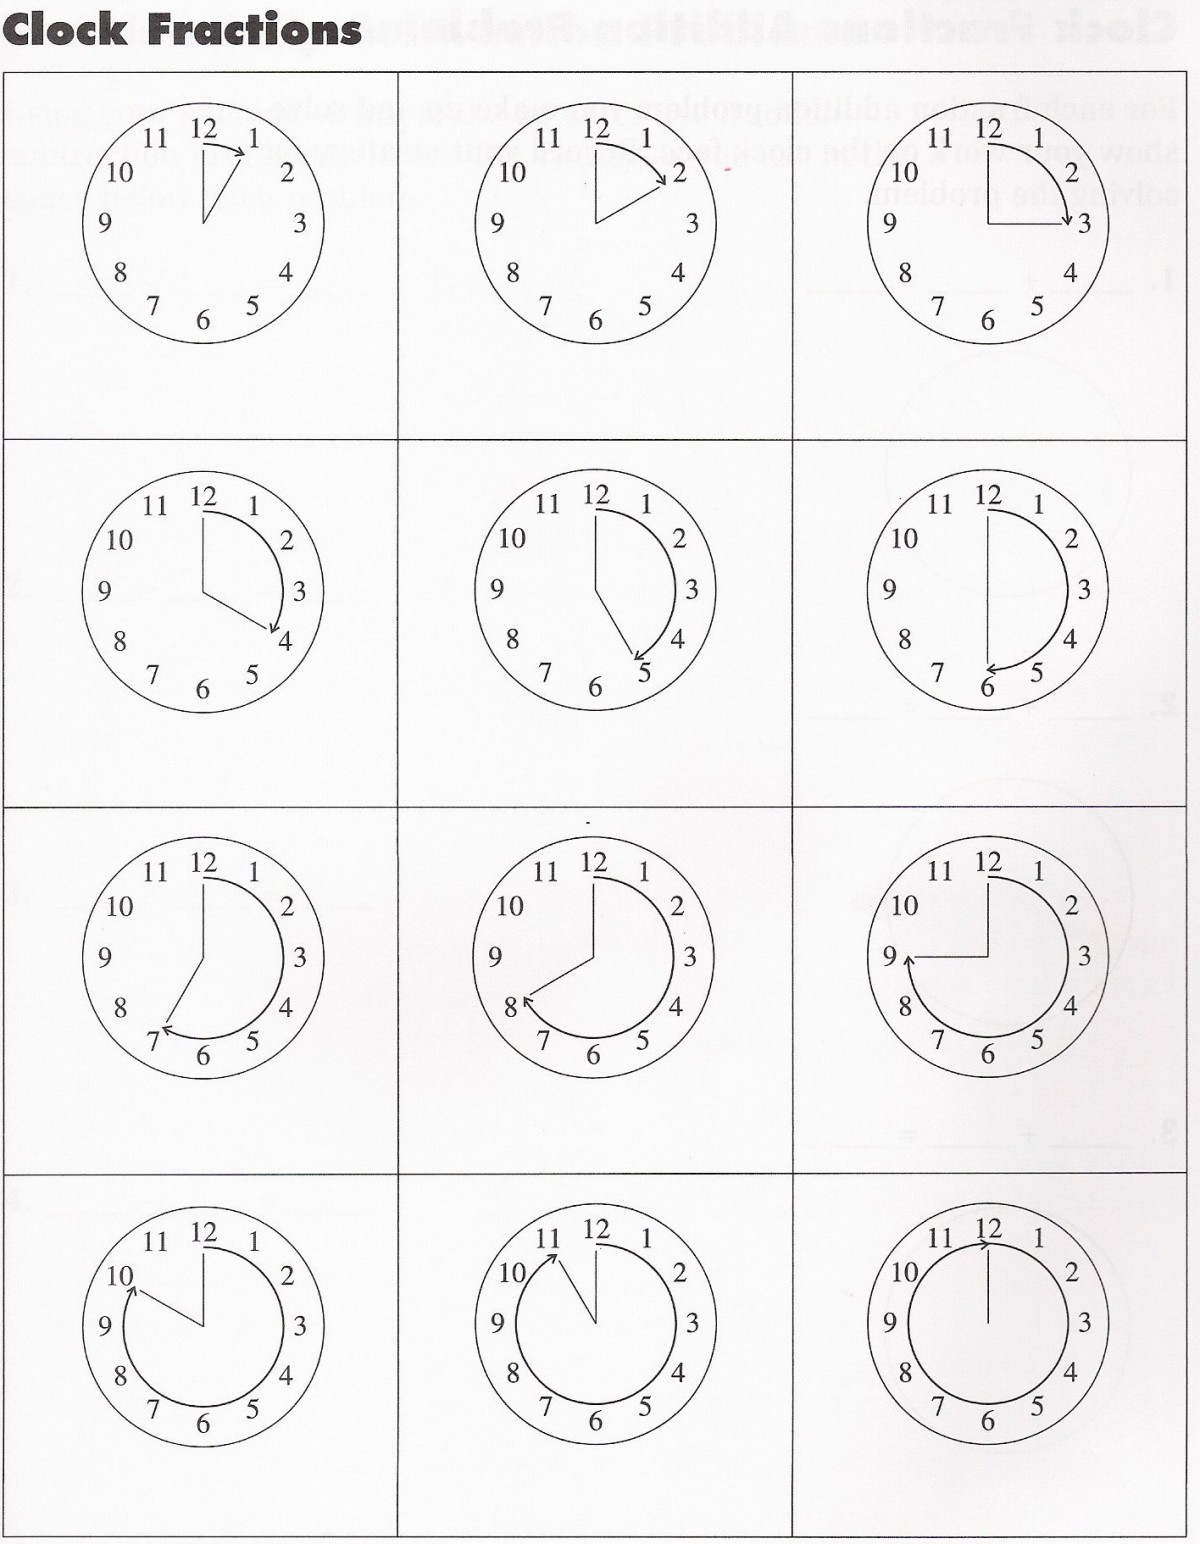 Clock Fractions Addition Problems Worksheets